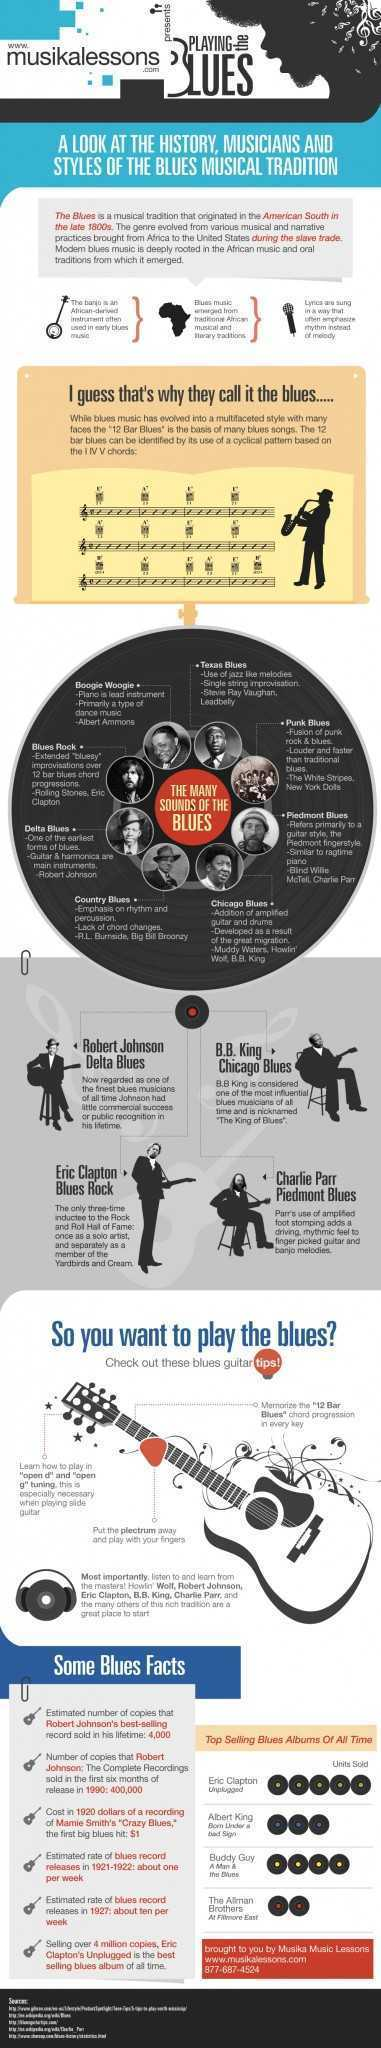 Infographic Playing the Blues Musika Lessons